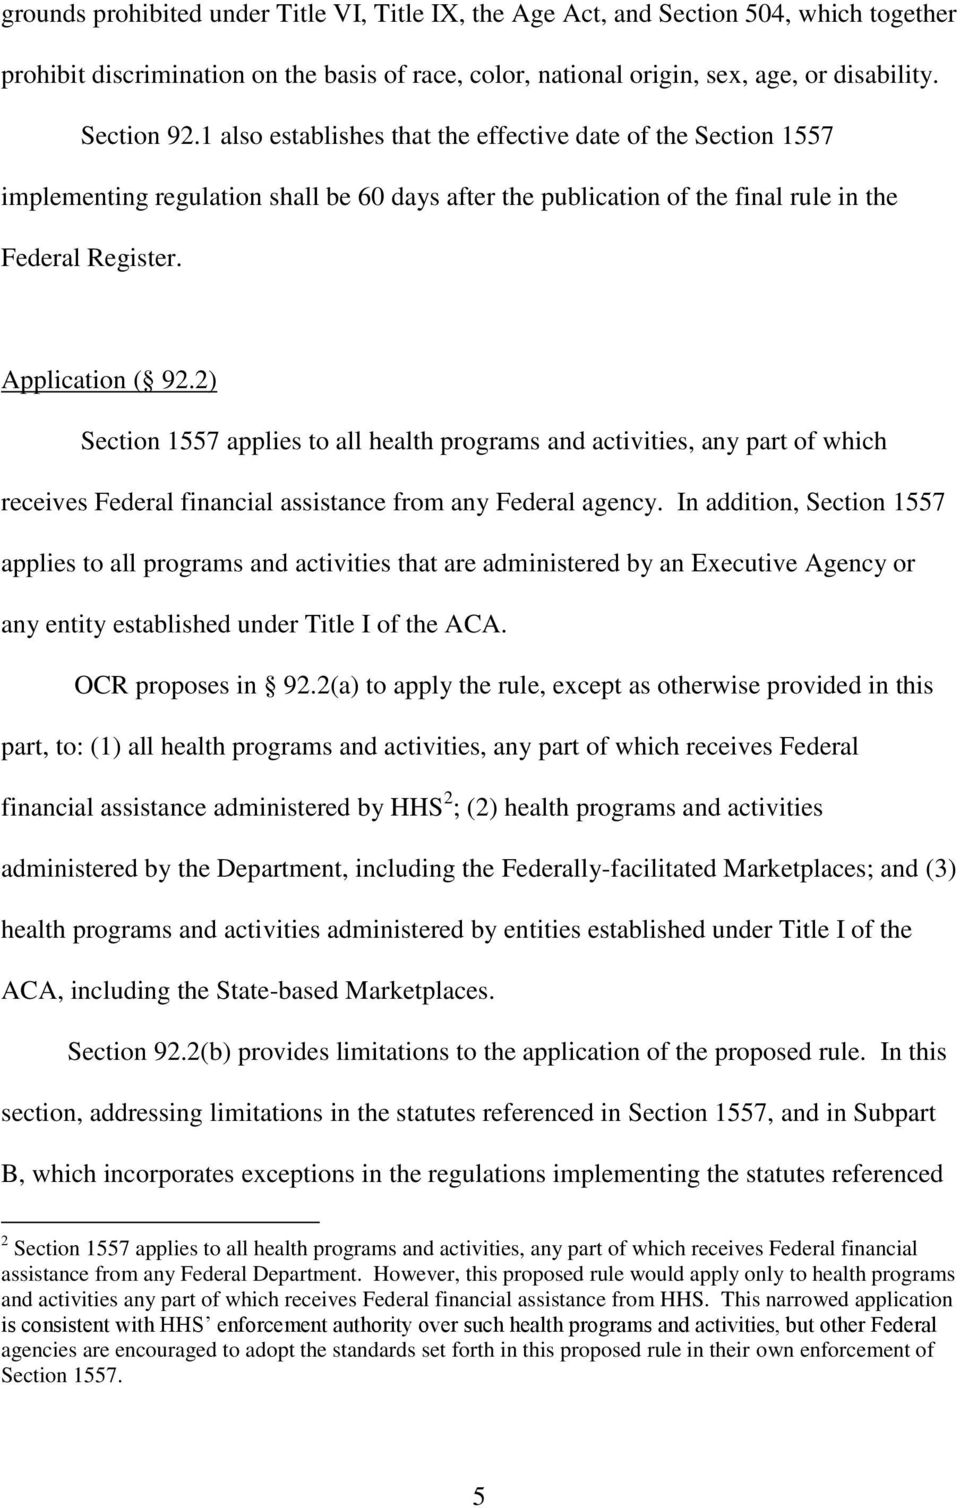 2) Section 1557 applies to all health programs and activities, any part of which receives Federal financial assistance from any Federal agency.